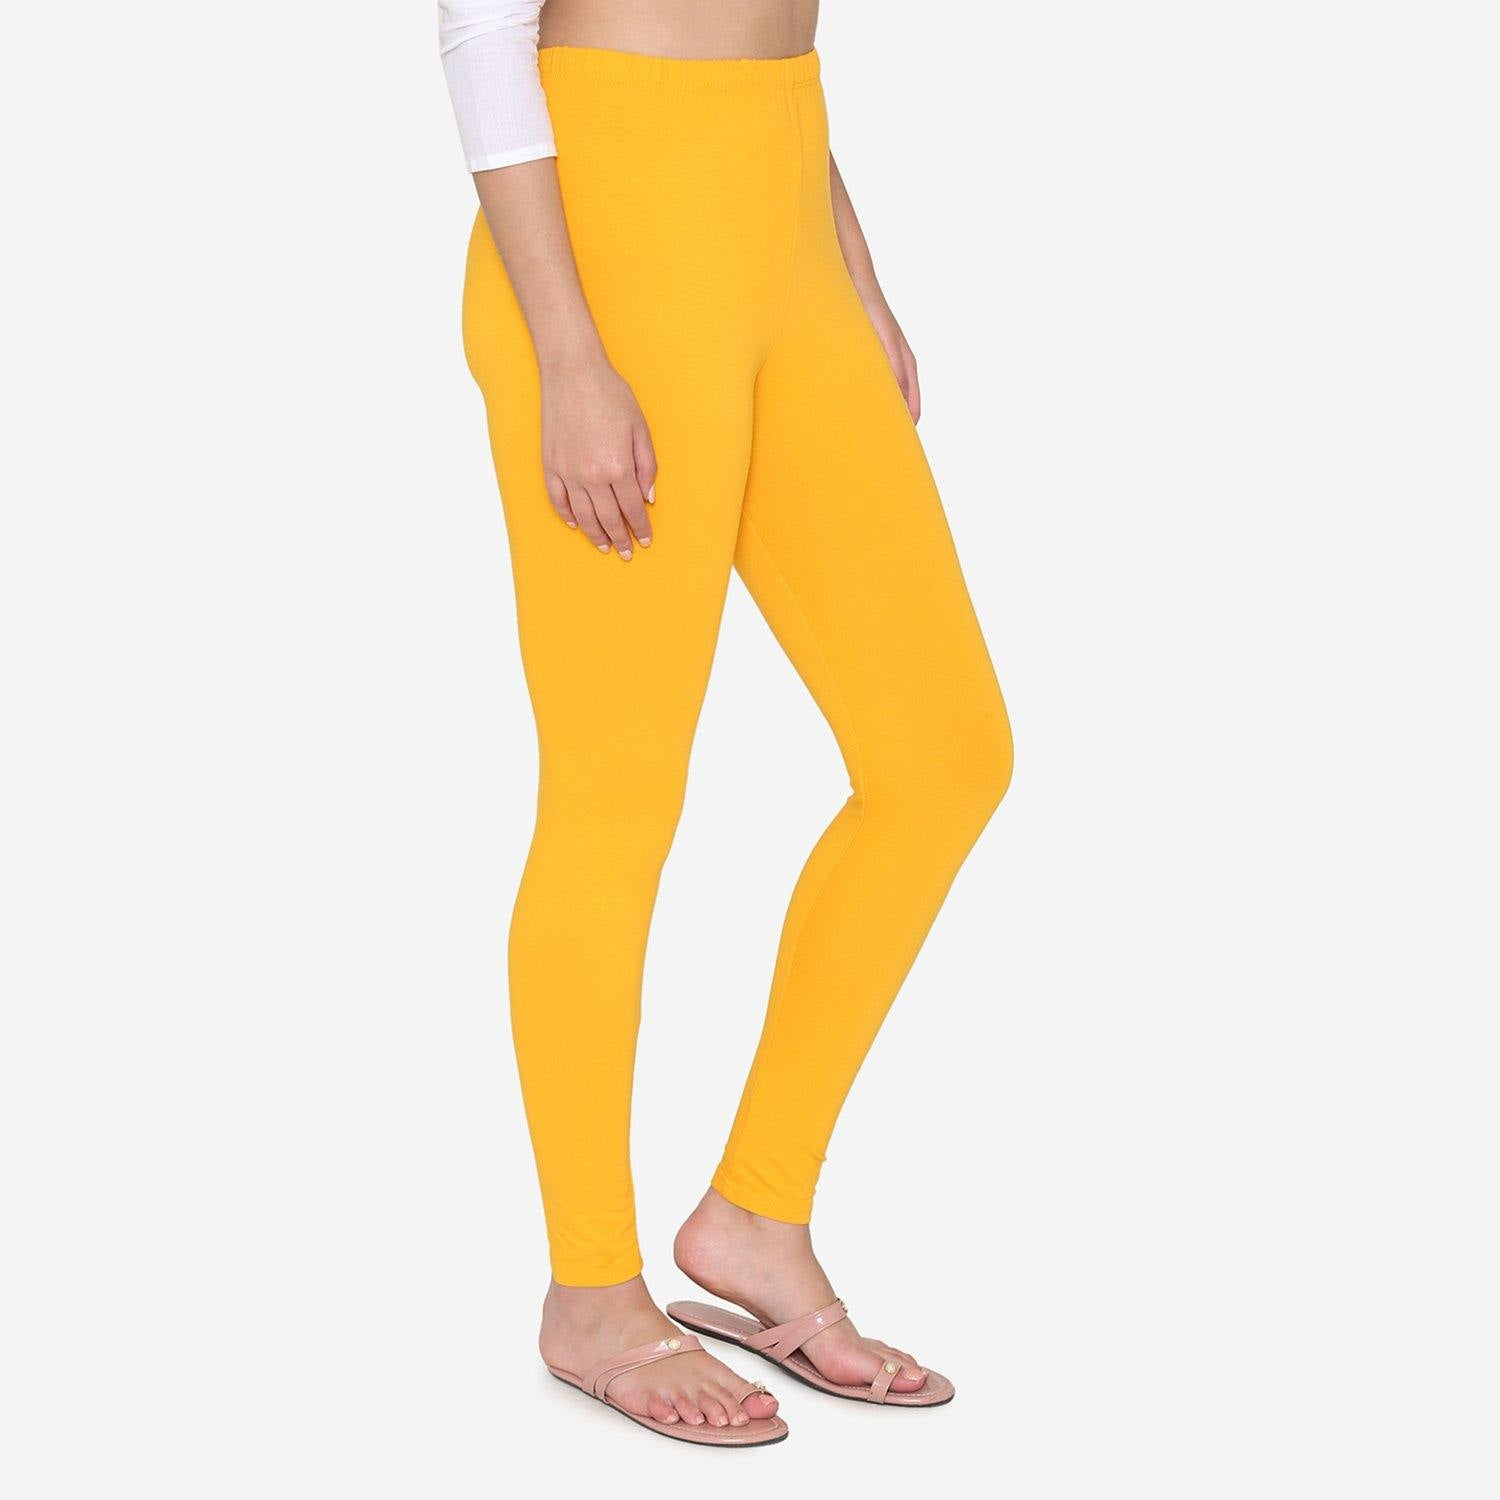 Vami Women's Cotton Stretchable Ankle Leggings - Marigold